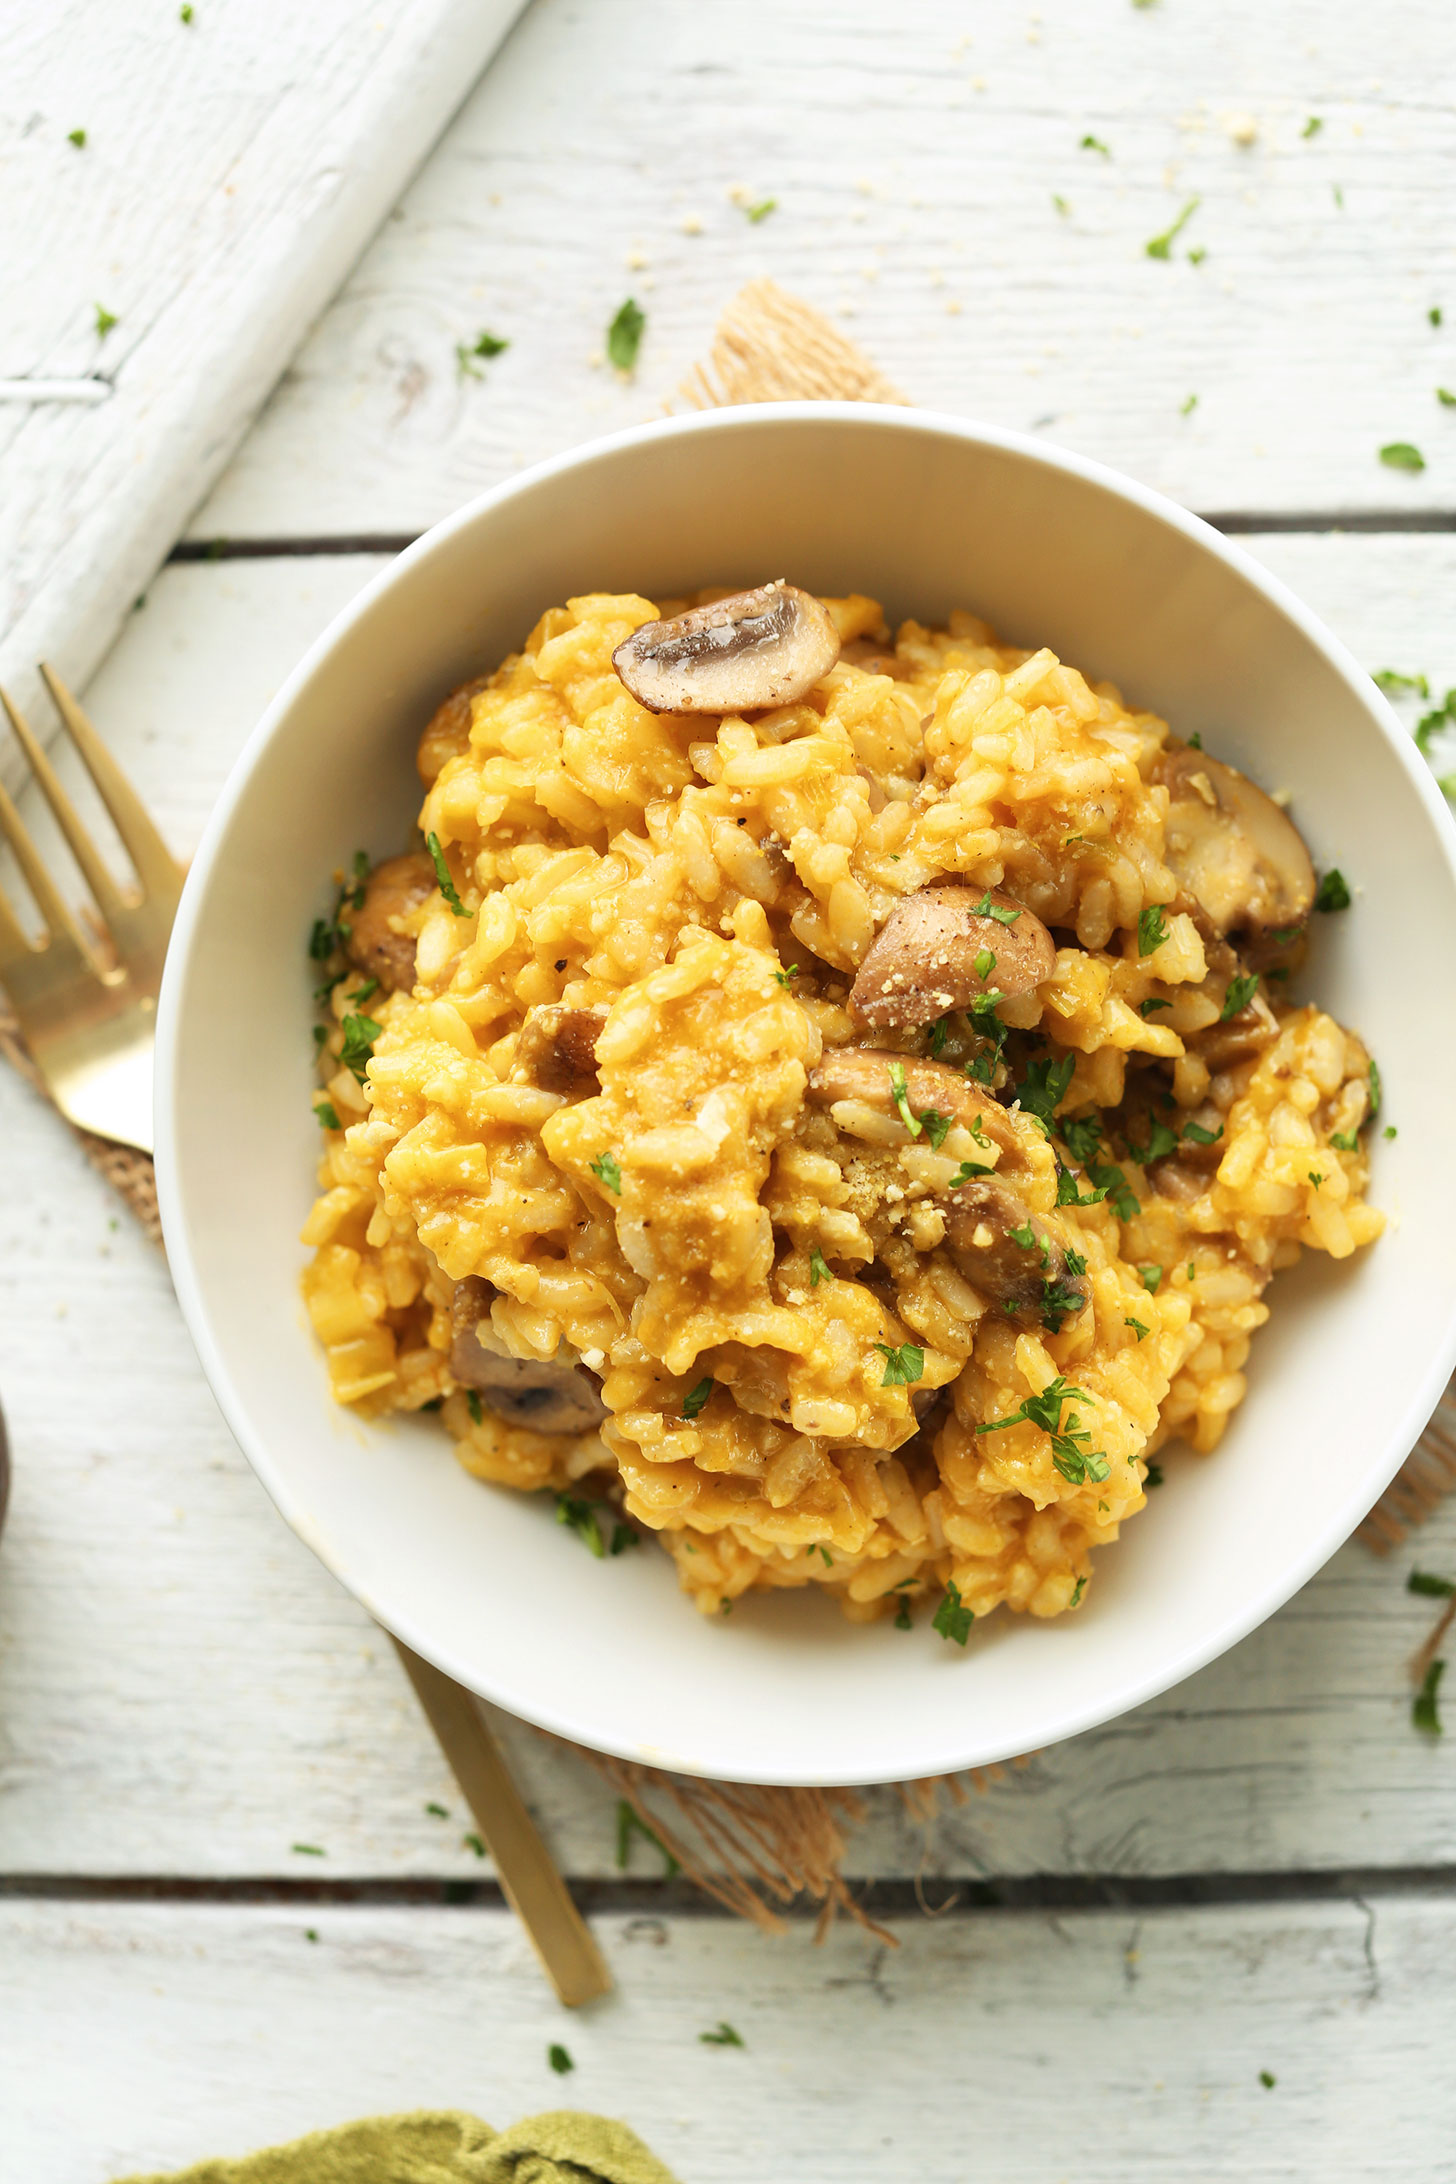 Mushroom and leek risotto vegan gf minimalist baker recipes 30 minute vegan risotto with mushrooms and leeks creamy cheesy comforting forumfinder Images